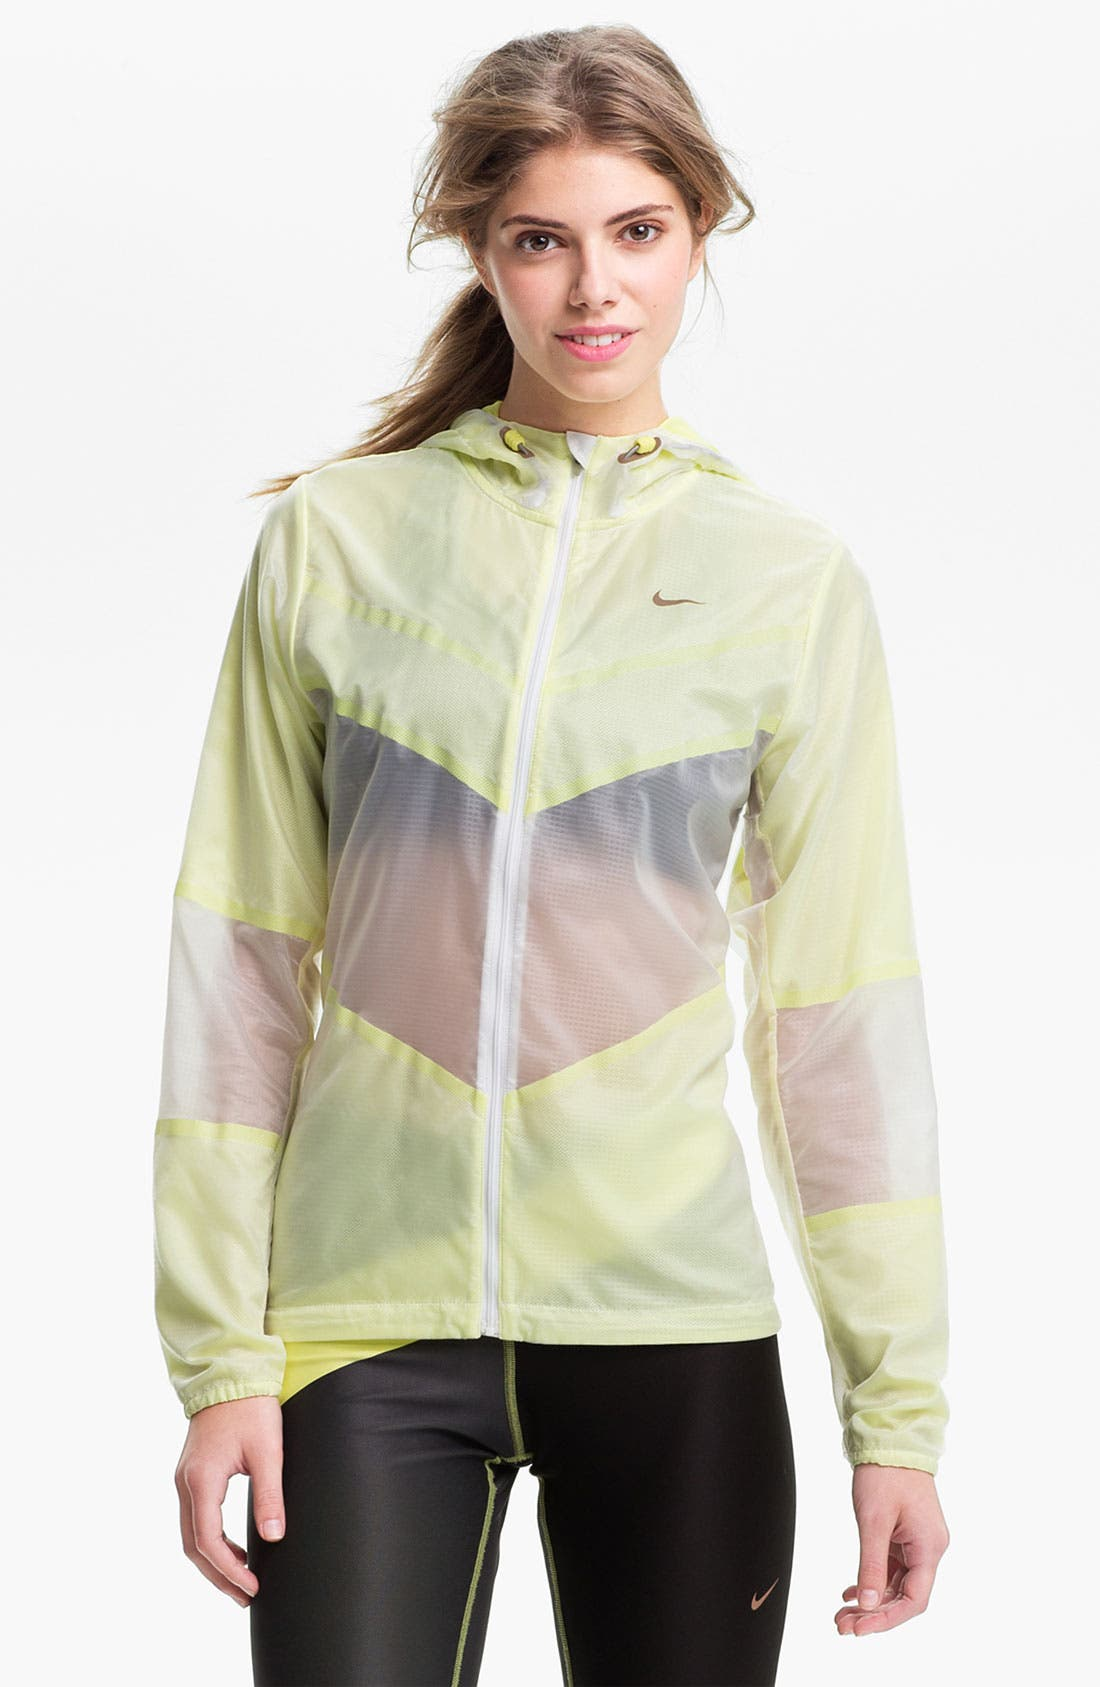 Alternate Image 1 Selected - Nike 'Cyclone' Running Jacket